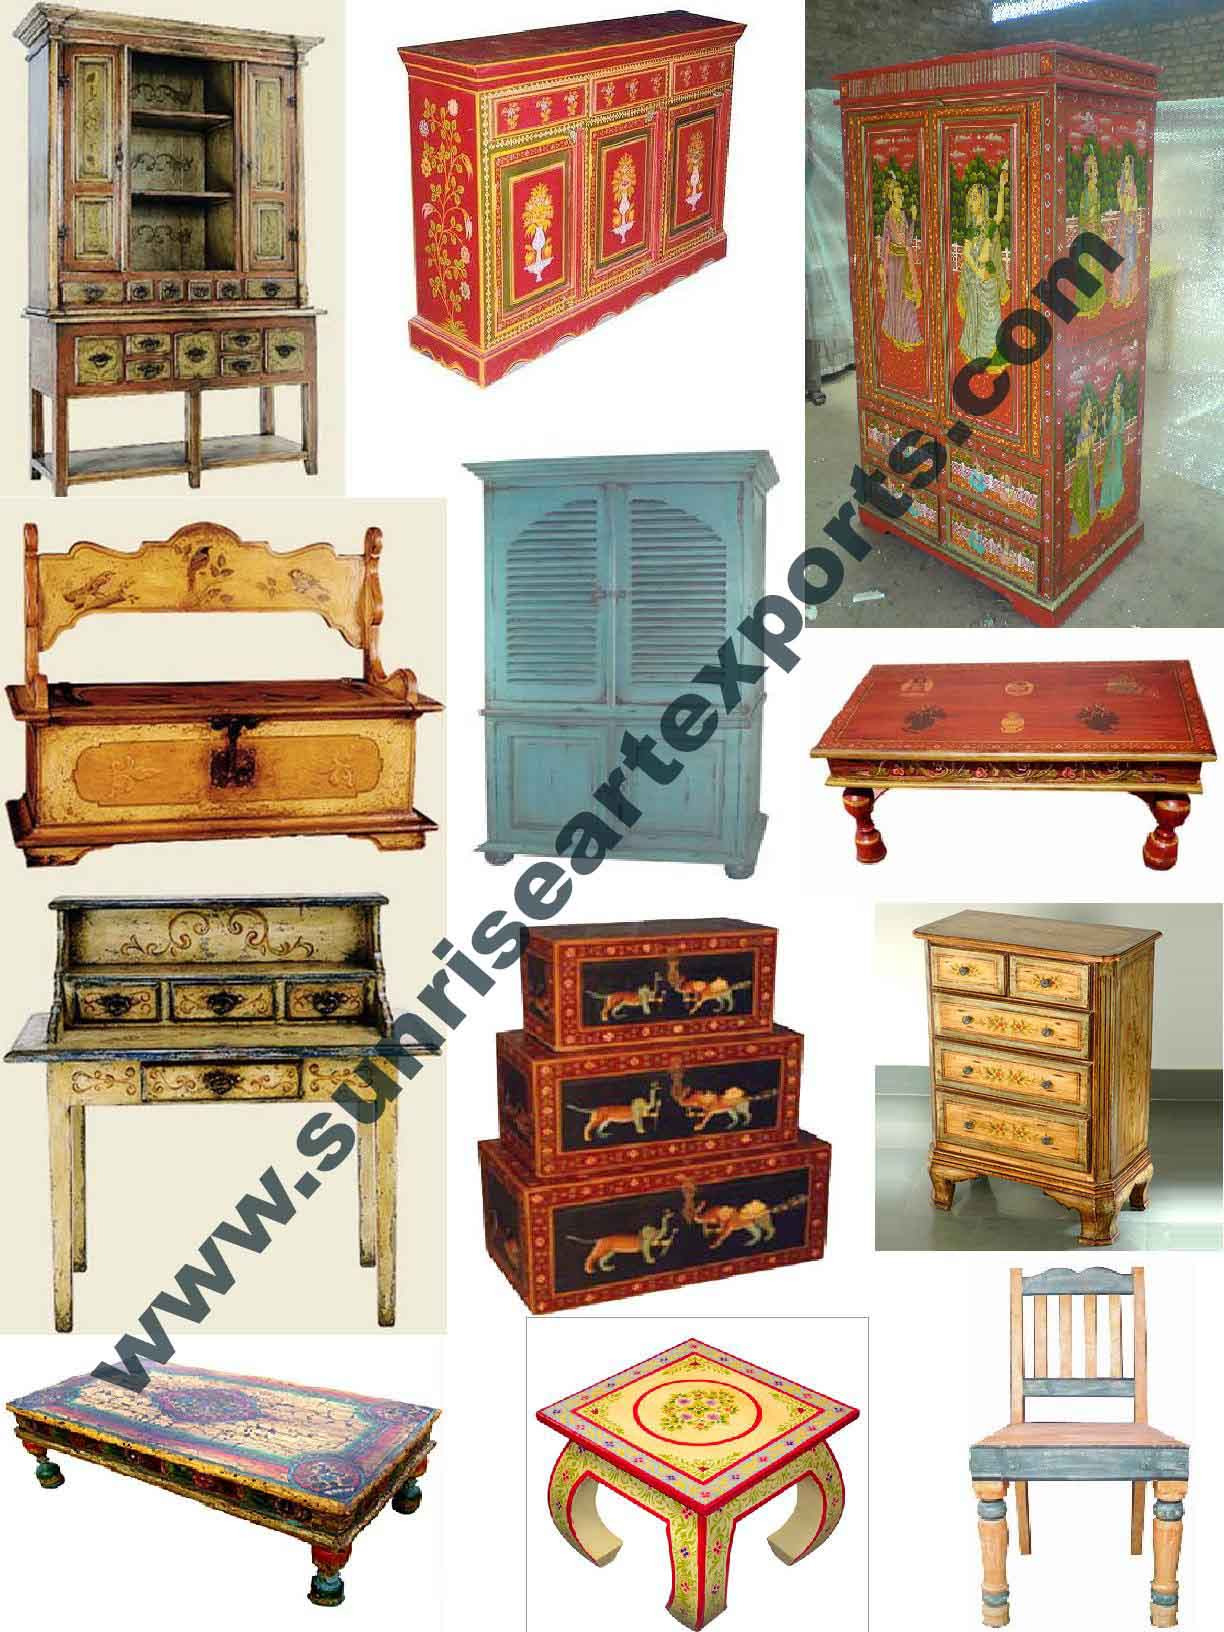 Who Buy Antique Furniture Beautiful Hand Painted Furniture Antique Reproduction Furniture Handmade Painting Indian Distress Furniture White Paint Furniture Buy Antique Reproduction